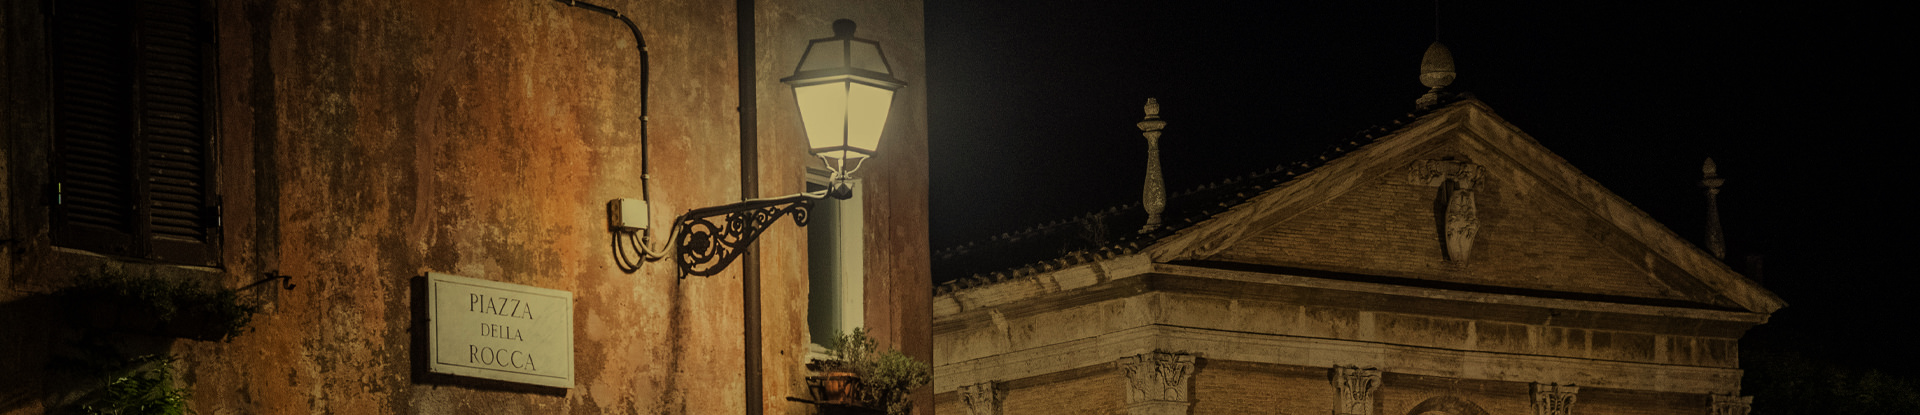 New artistic lighting system in the Old Town of Ostia Antica